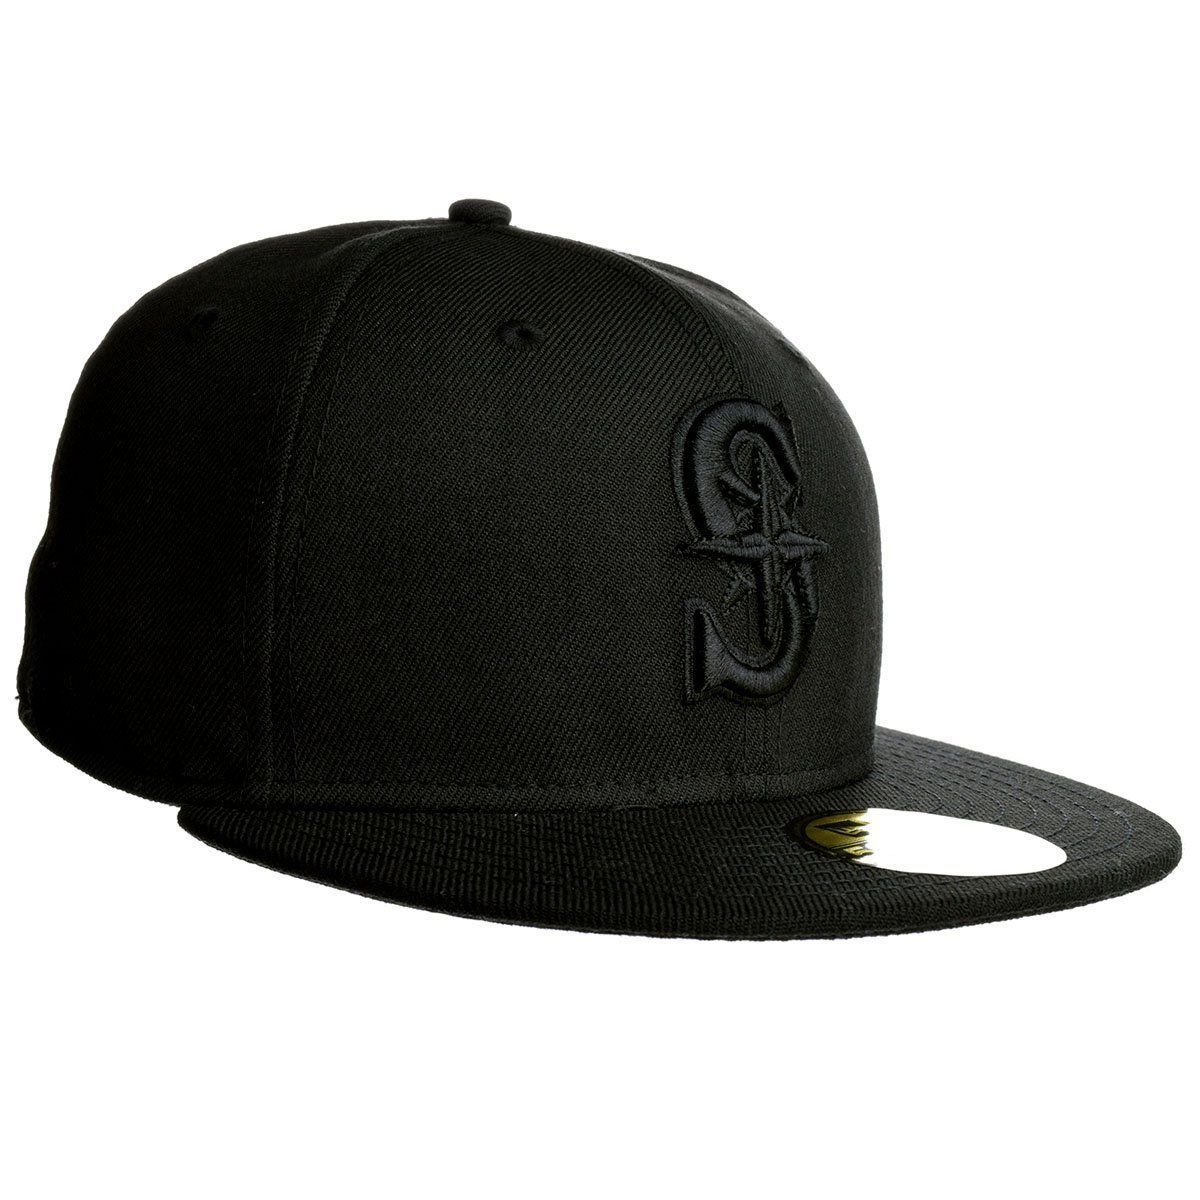 new product 3a4f9 81065 NWT New Seattle Mariners New Era 59Fifty Black on Black Size 7 Hat Cap.  Next. 1